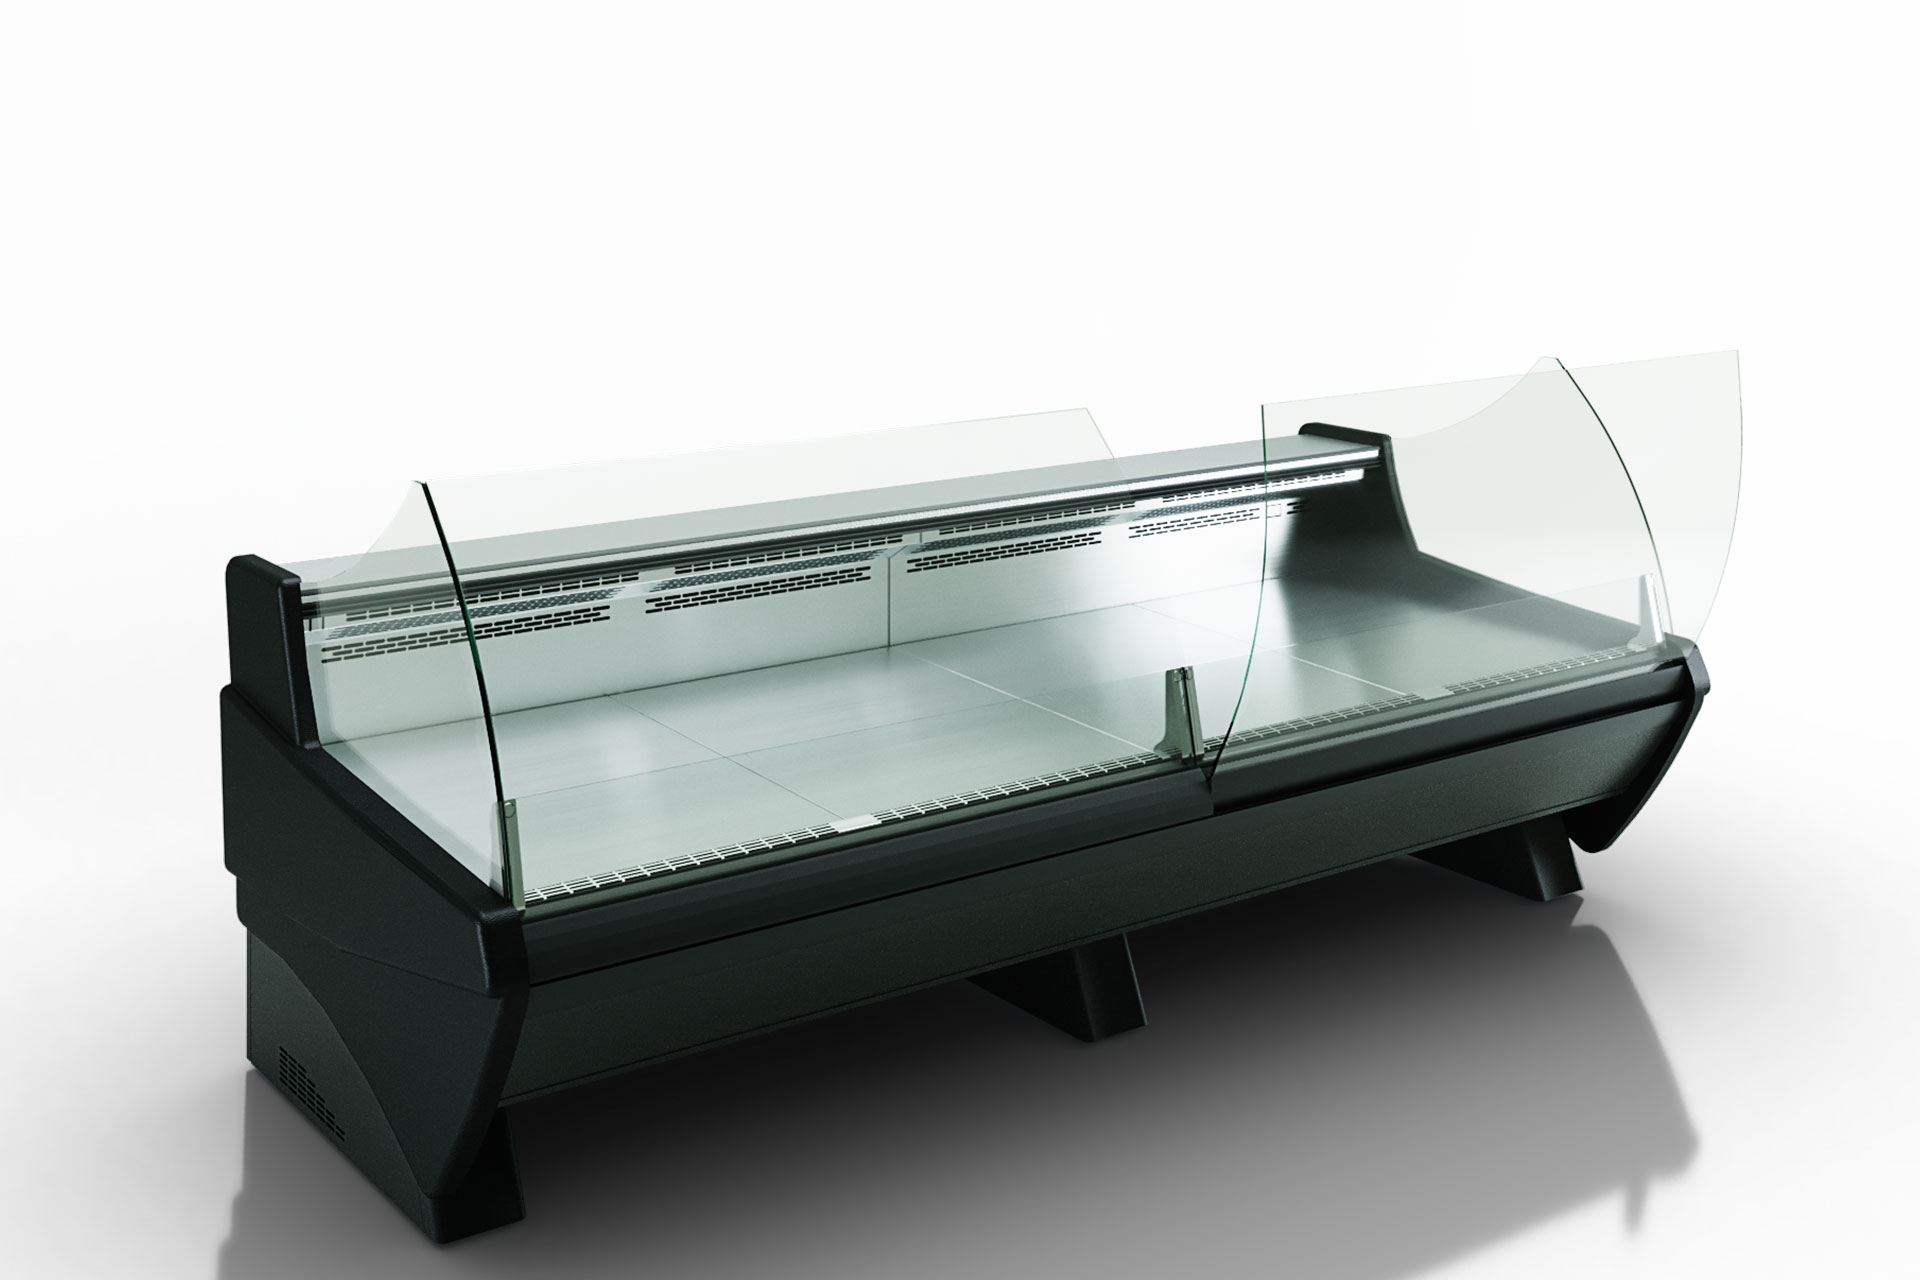 Counter Symphony luxe MG 100 deli T2 110-DLM